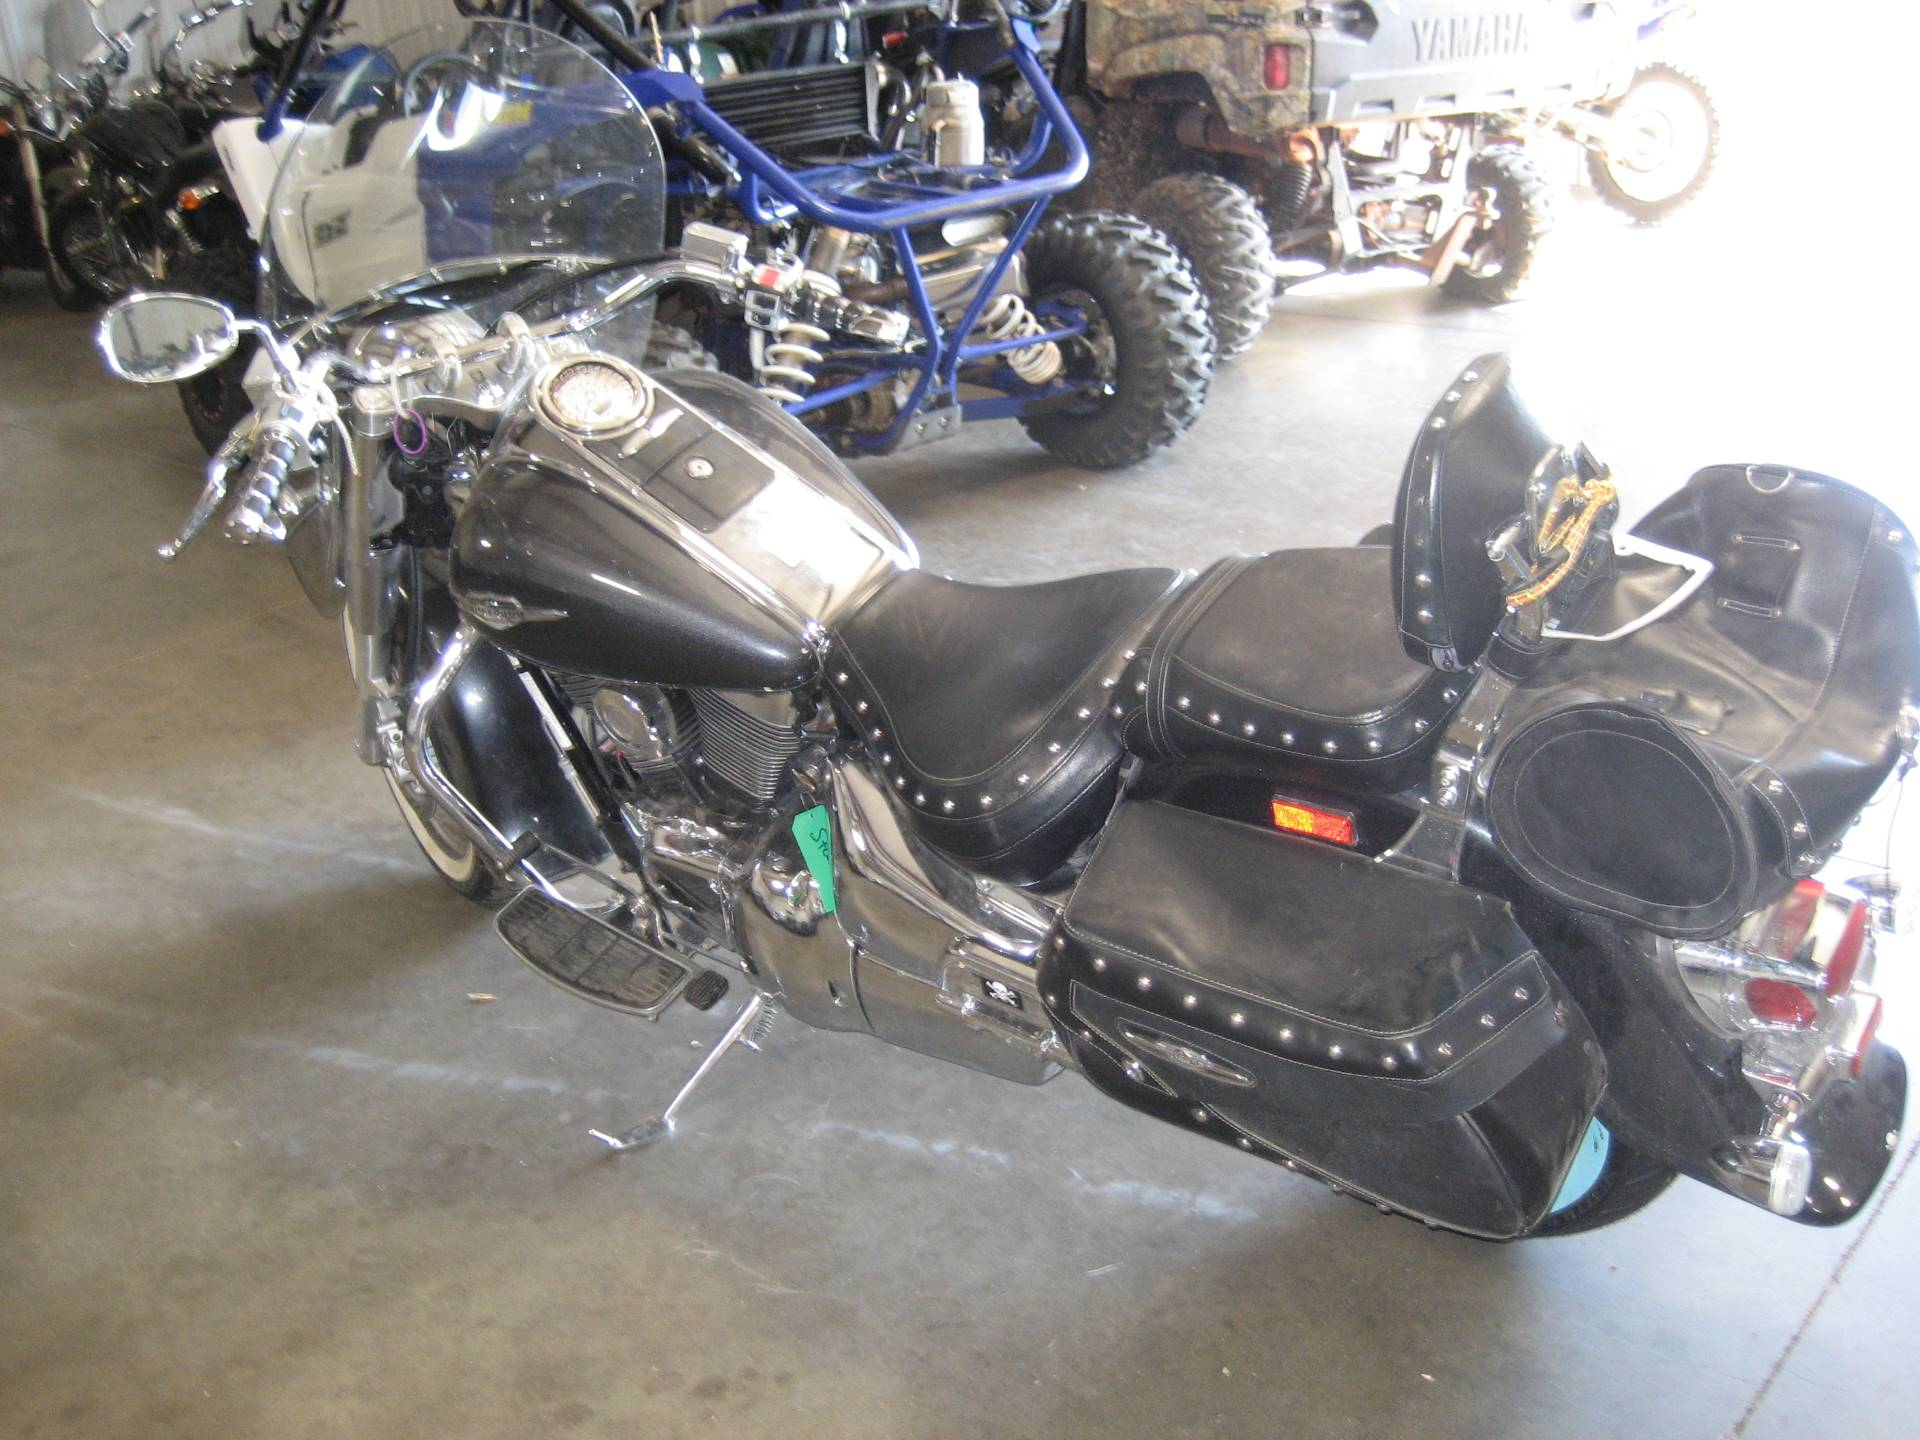 2006 Suzuki Boulevard C90 Black in Shawnee, Oklahoma - Photo 2